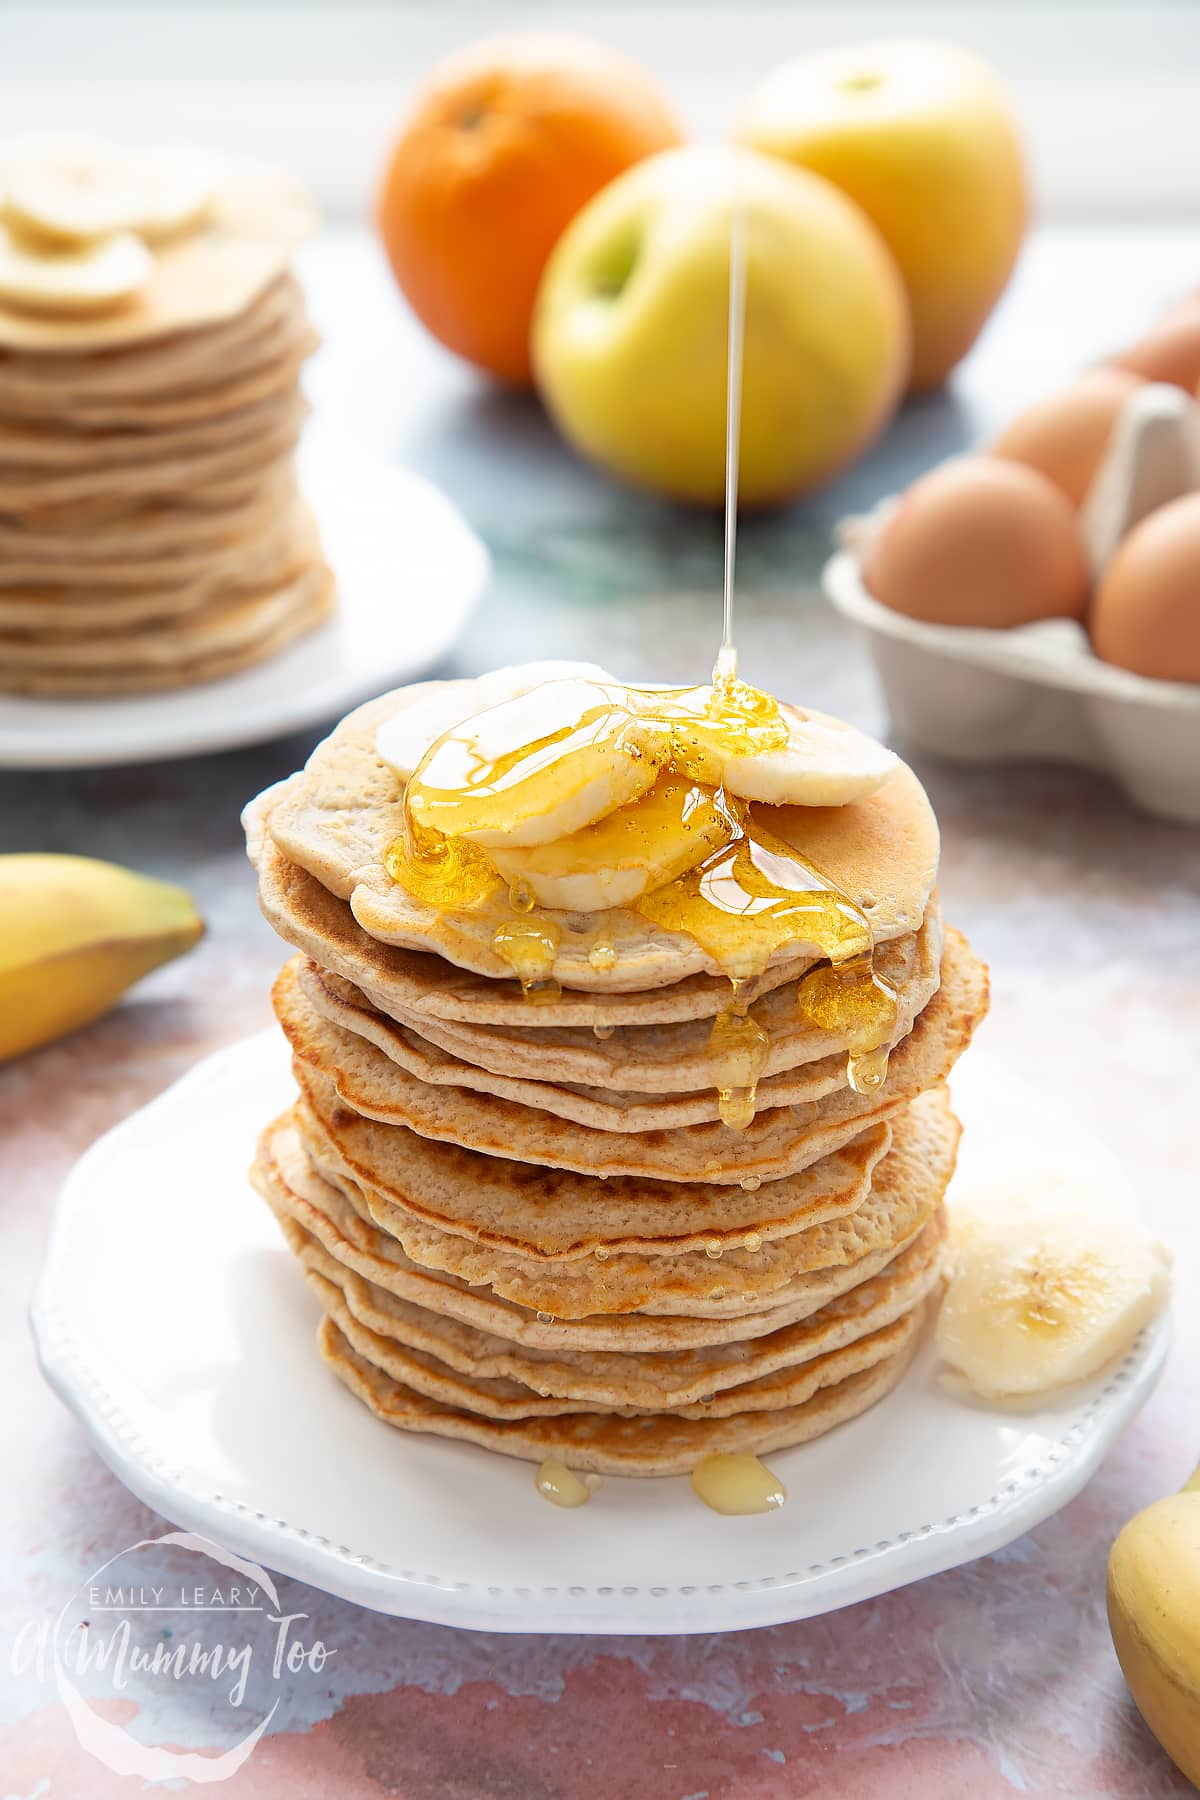 A stack of fluffy pancakes topped with syrup and banana on a white plate